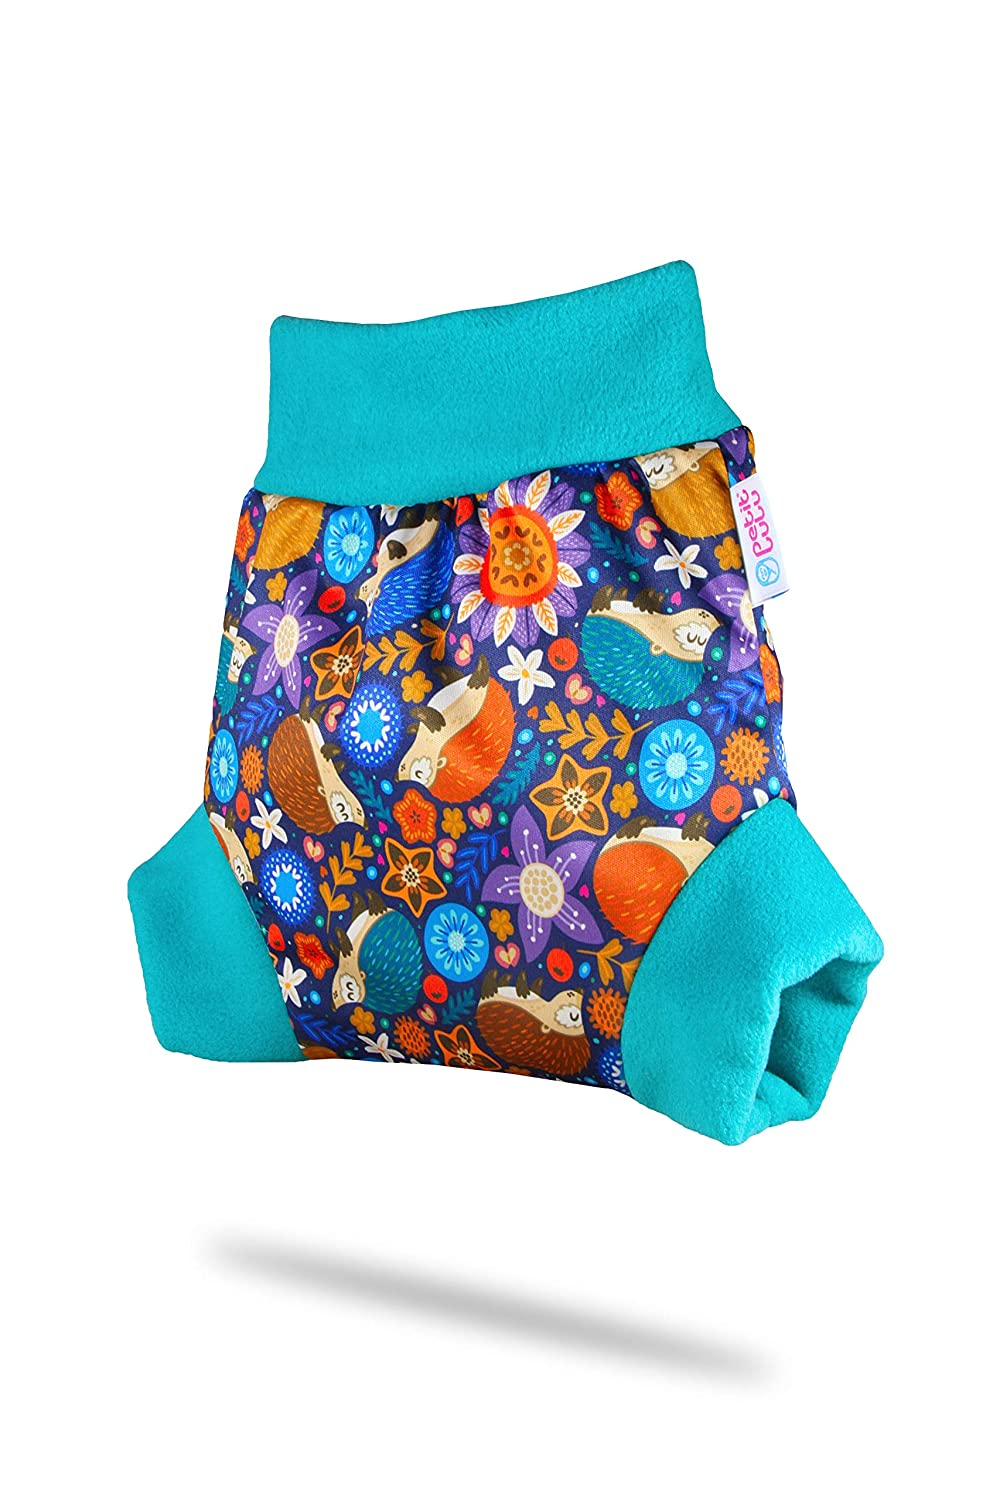 Made in Europe Petit Lulu Pull-Up Cloth Nappy Cover Sizes XS//S//M//L//XL Washable Diaper Wrap Rainbow Stars, Size S Cloth Nappies